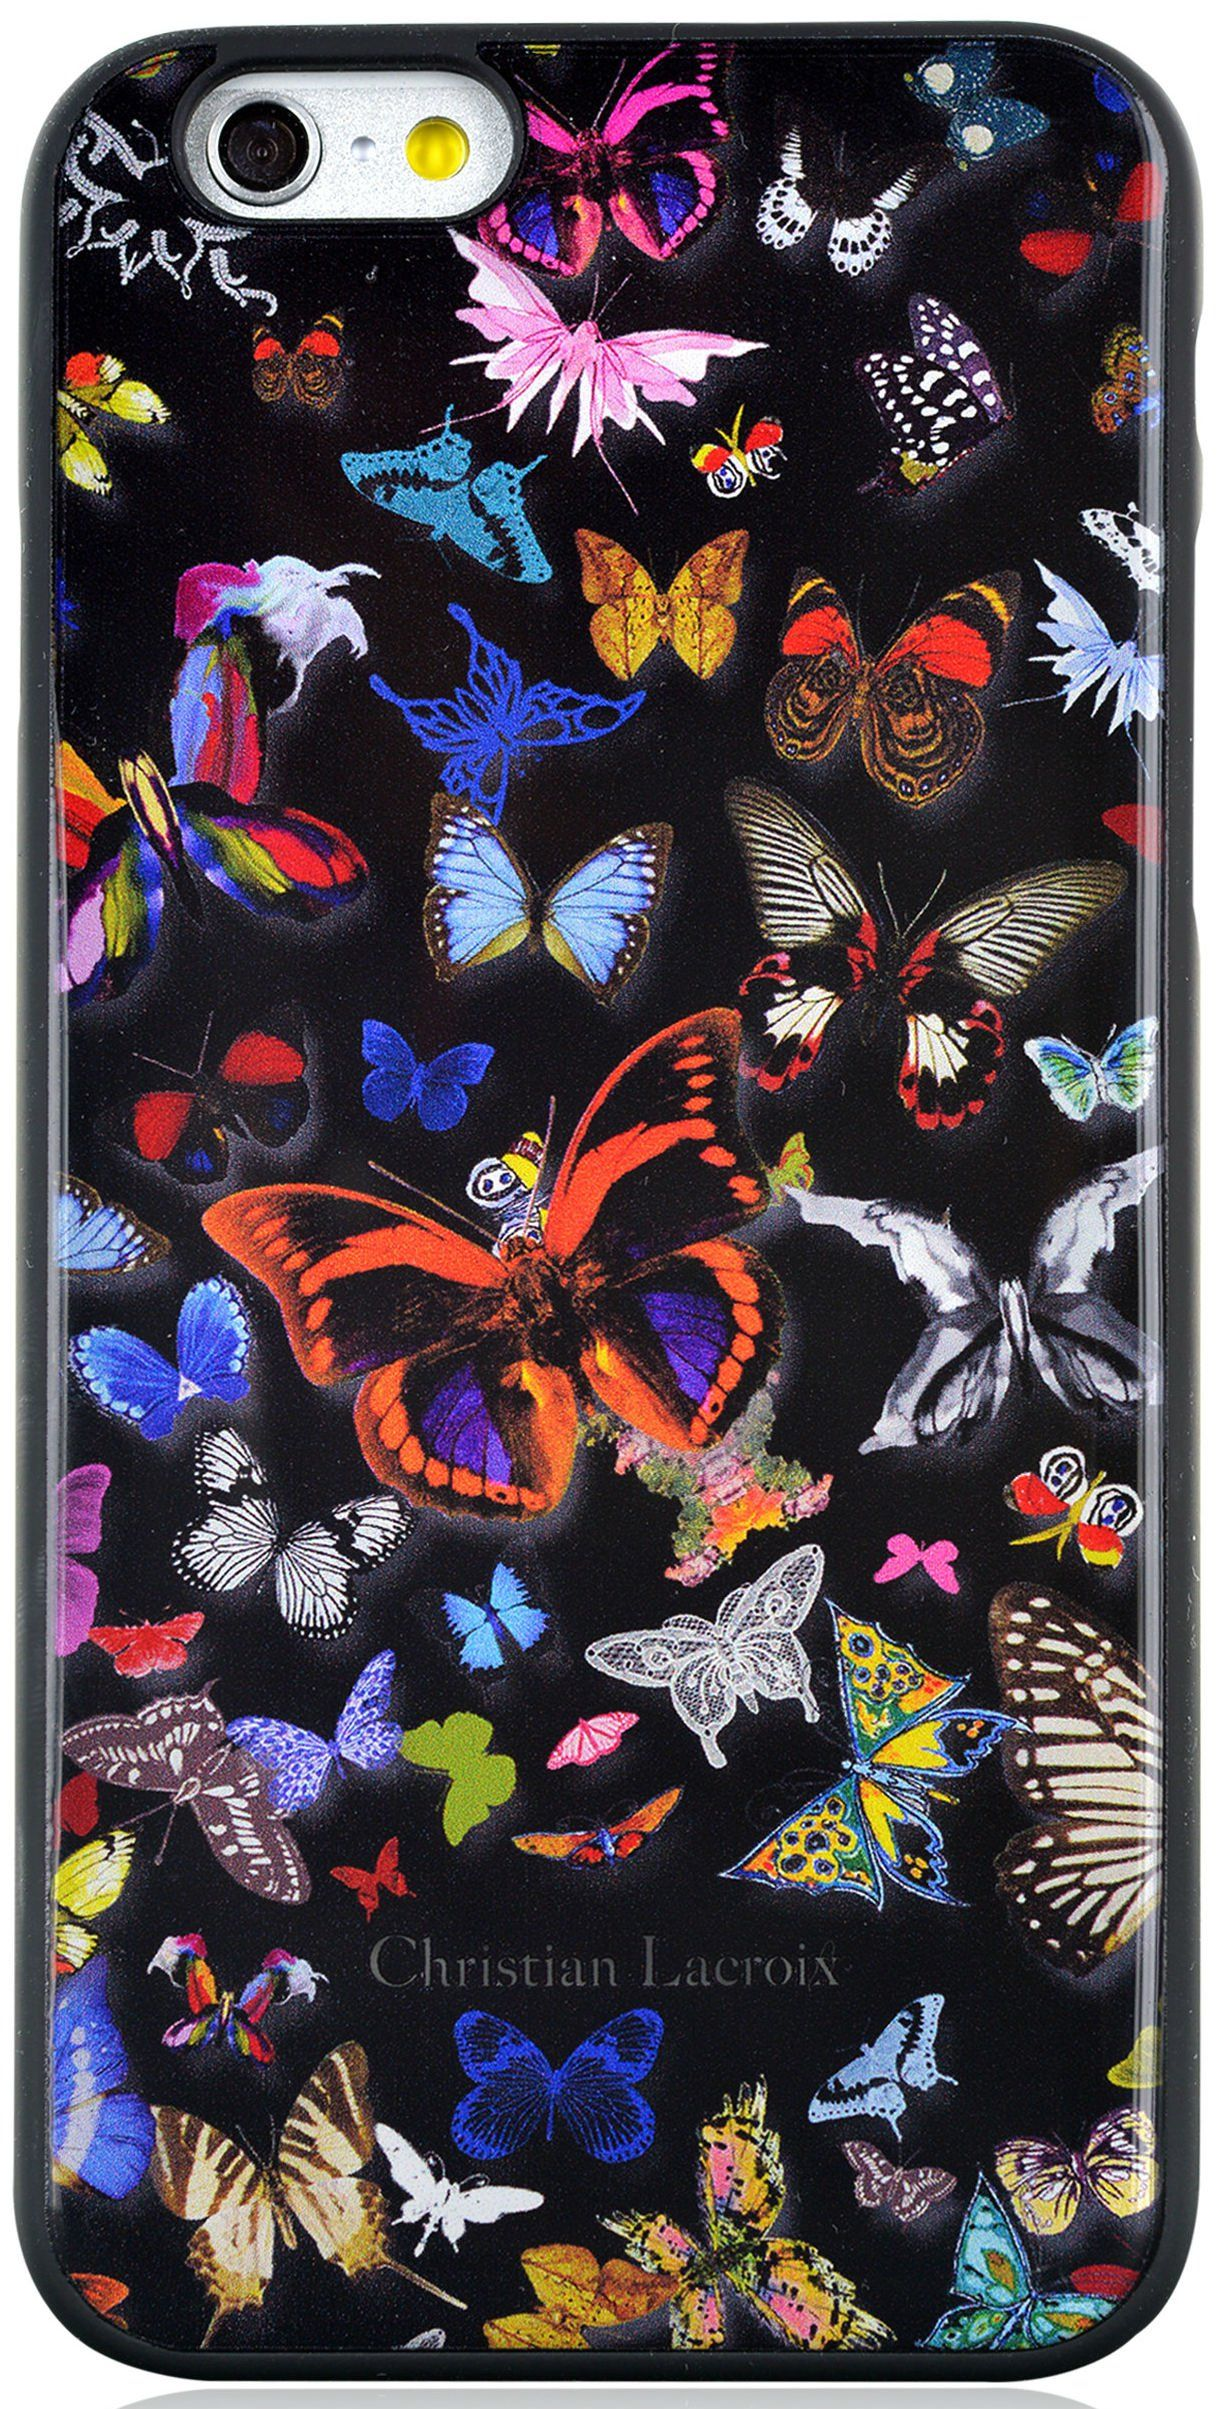 Чехол Lacroix iPhone 6 Butterfly Hard Case - Black